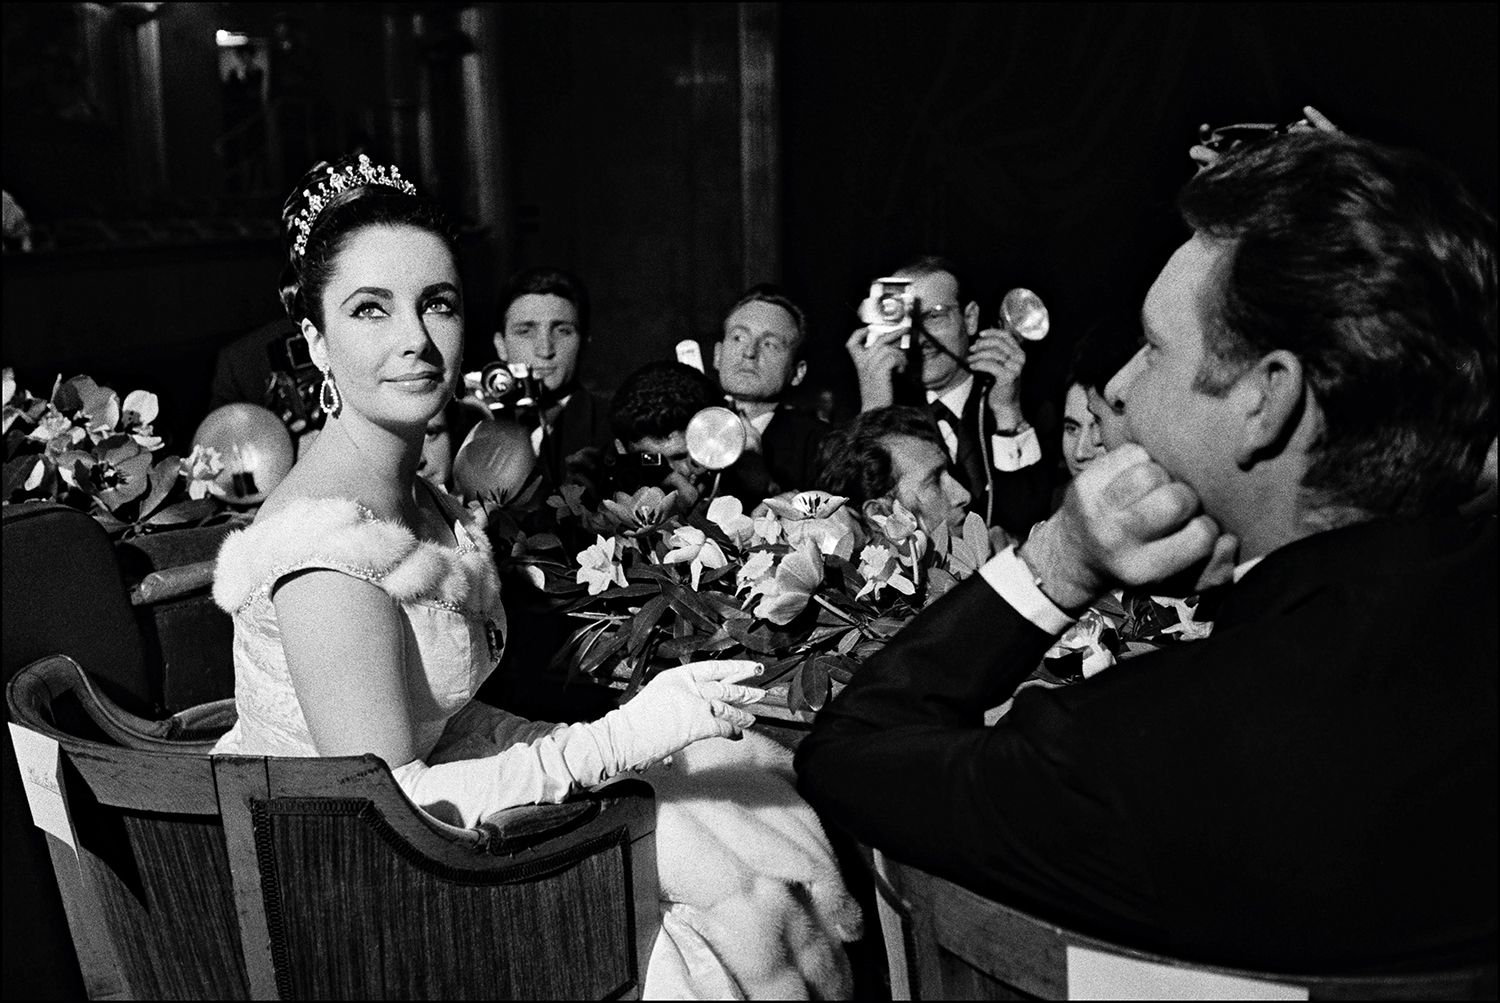 PARIS, FRANCE- MARCH 16:  Elizabeth Taylor and Richard Burton at the film premiere of ''Lawrence of Arabia'' on March 16, 1963 in Paris, France.  (Photo by REPORTERS ASSOCIES/GAMMA/Gamma-Rapho via Getty Images)